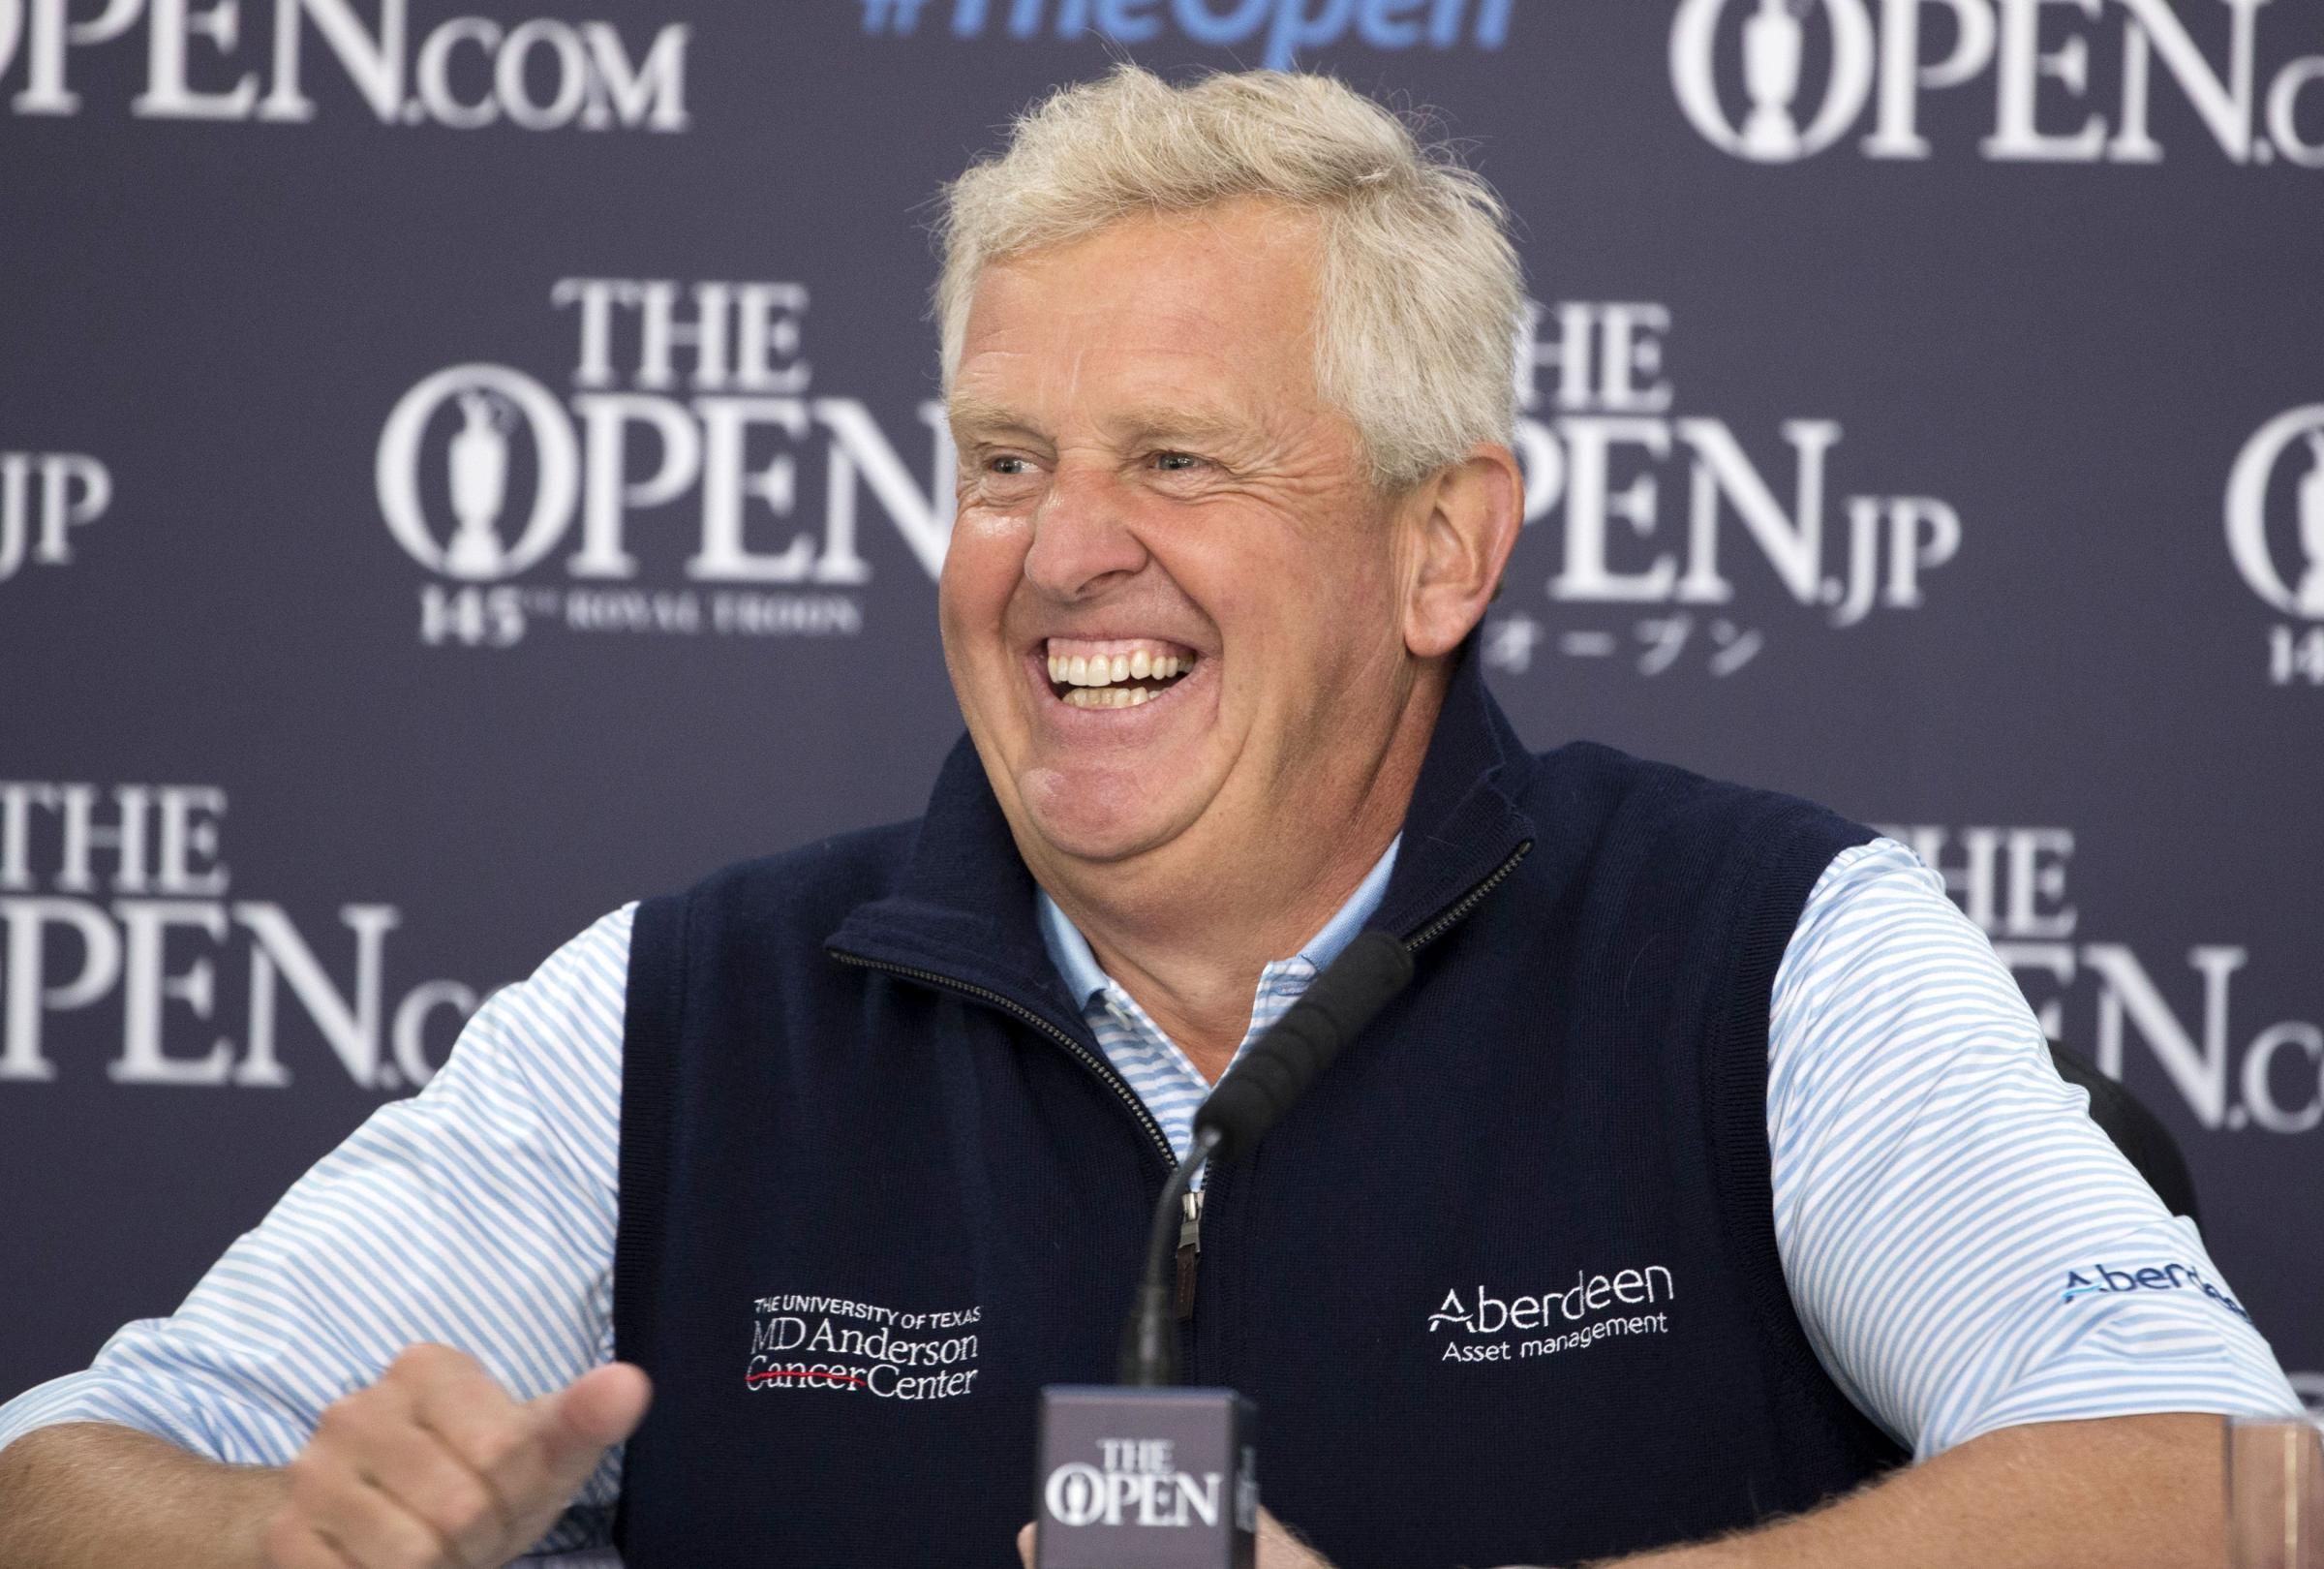 All smiles: Colin Montgomerie was in fine form ahead of this week's Open Championship (Picture: SNS)